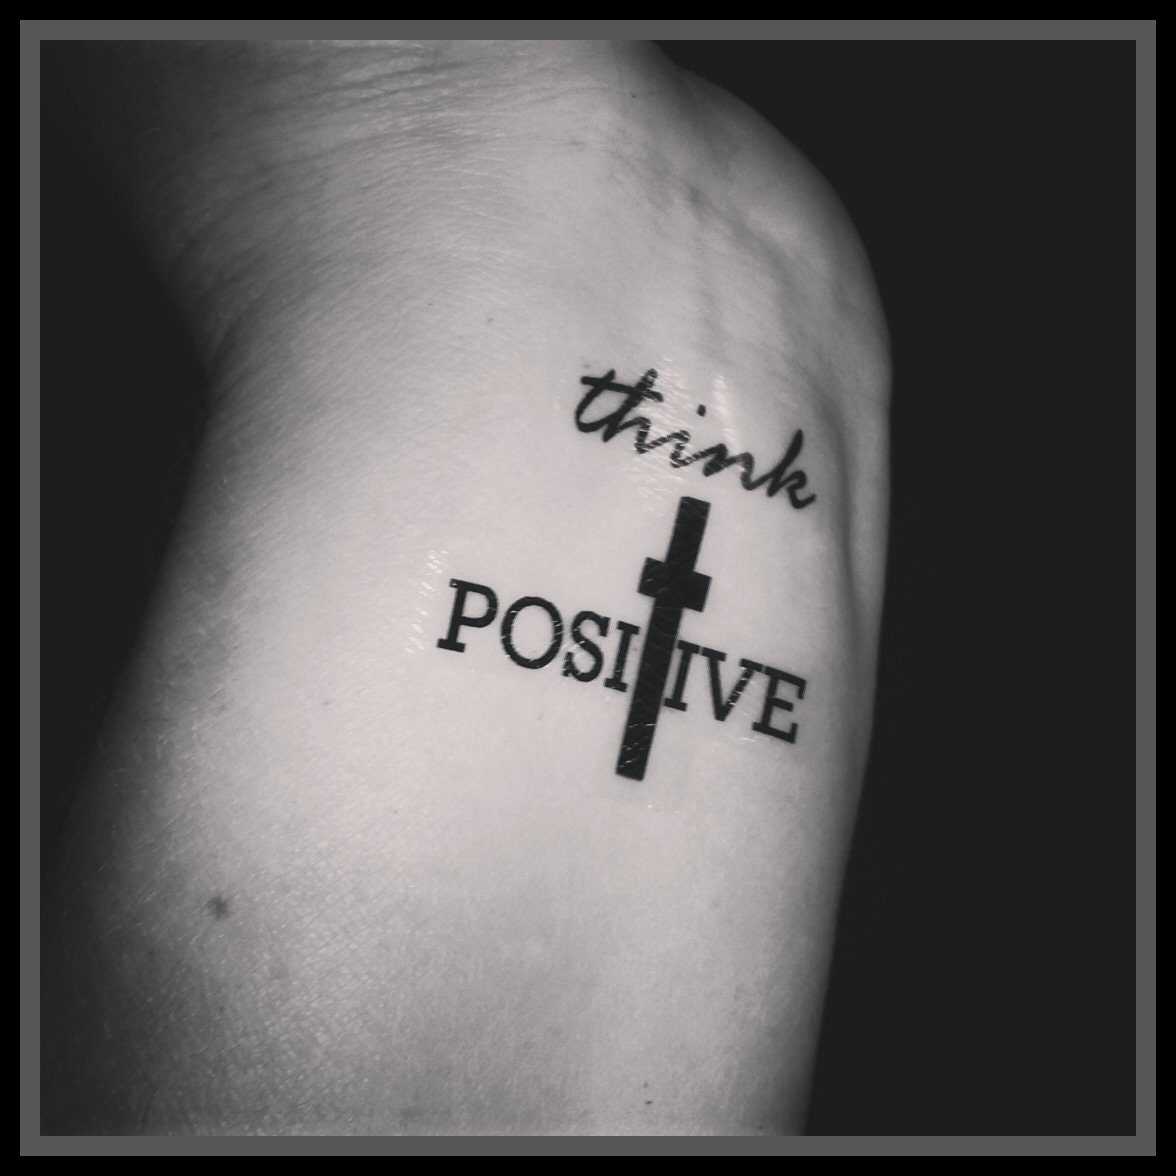 Tattoo Removal Quotes: Quote TattooTemporary Tattoos Set Of 2 Think Positive Cross